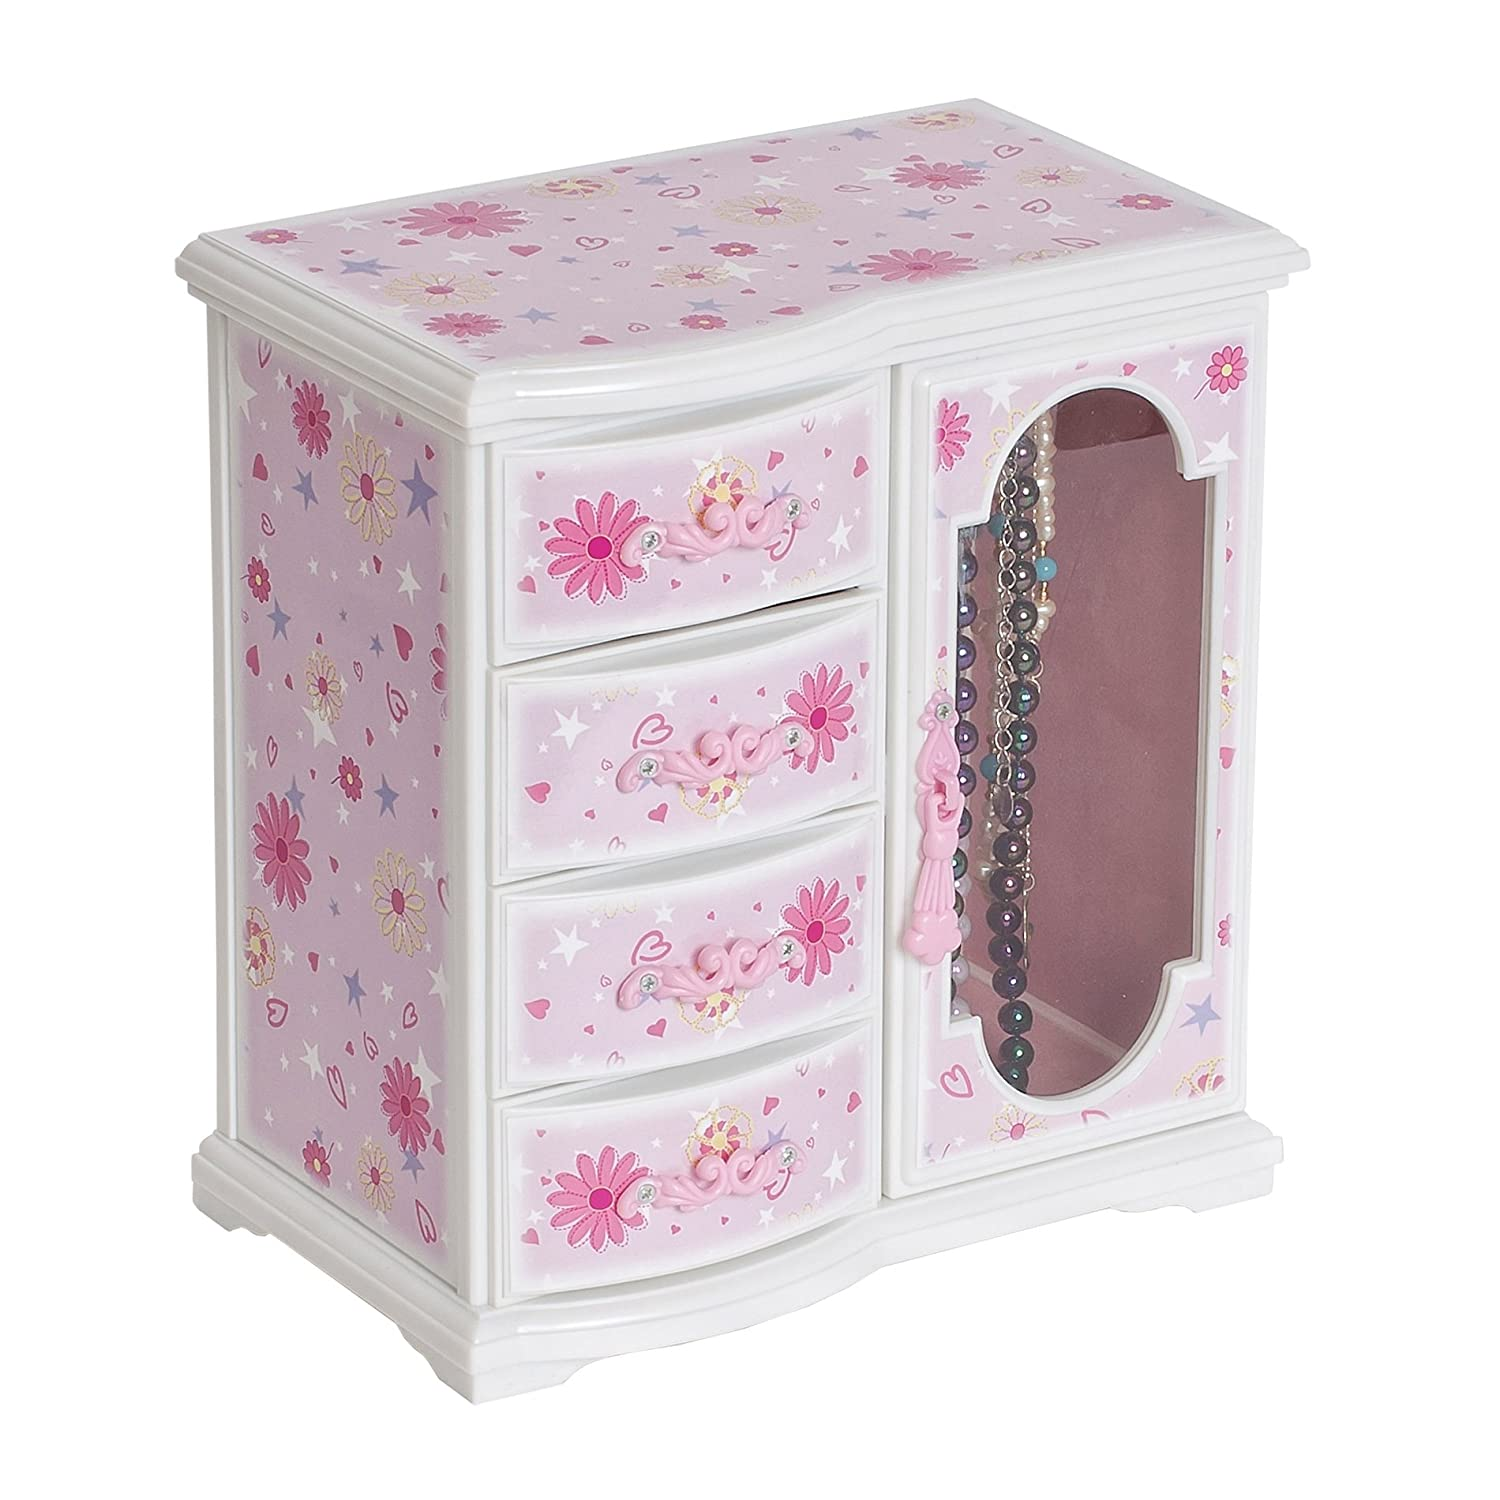 Amazoncom Mele Co Hyacinth Girls Musical Ballerina Jewelry Box